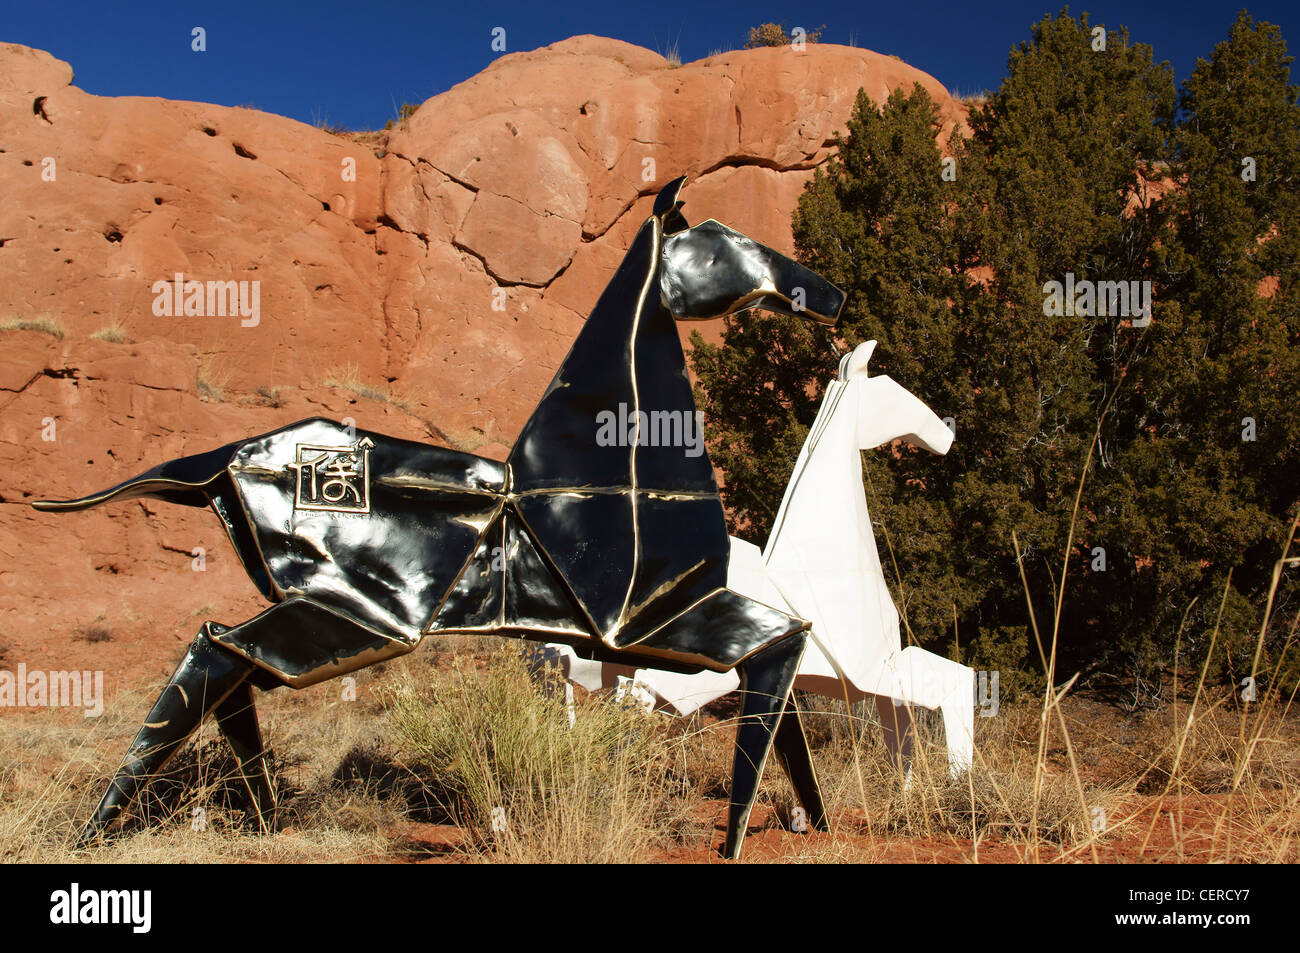 artwork garden of the gods lone butte new mexico nm horses sculpture center scenic convoluted geology art - Stock Image